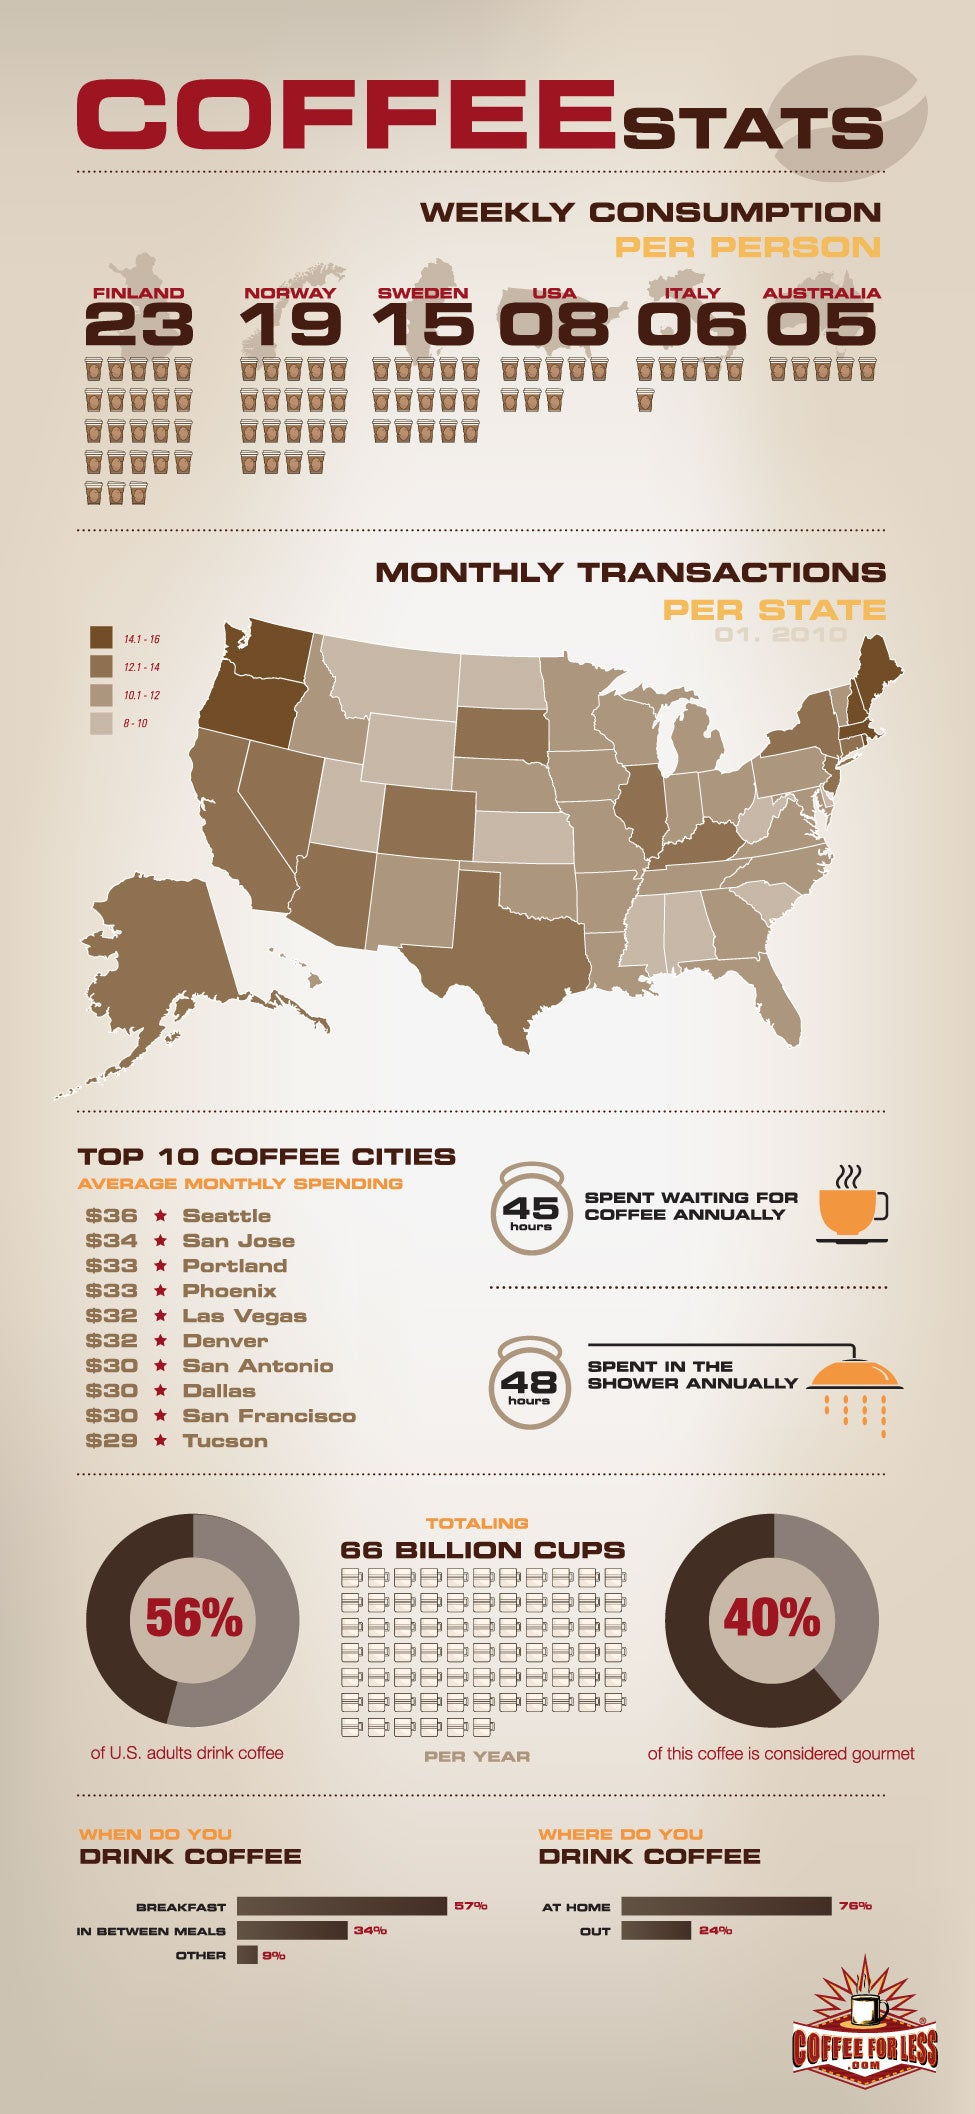 Find out who drinks the most coffee globally and throughout the United States.